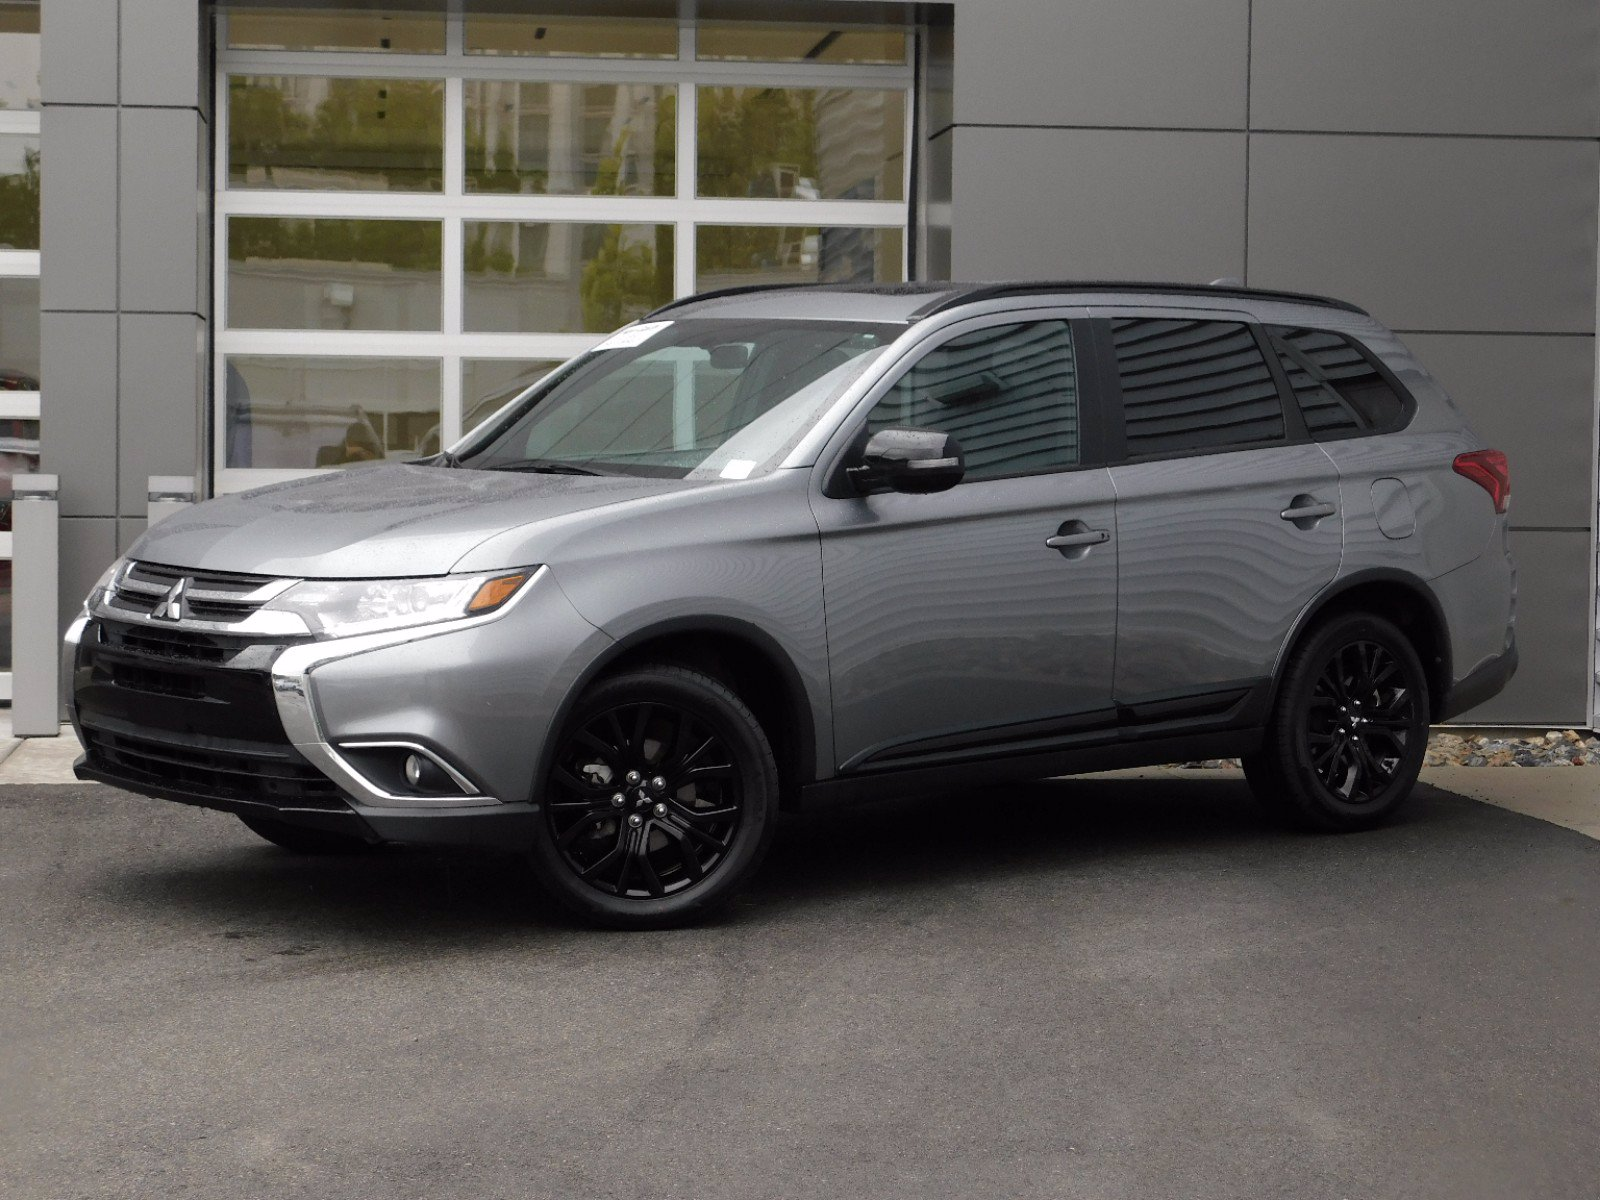 Pre-Owned 2018 Mitsubishi Outlander WAGON 4 DOOR